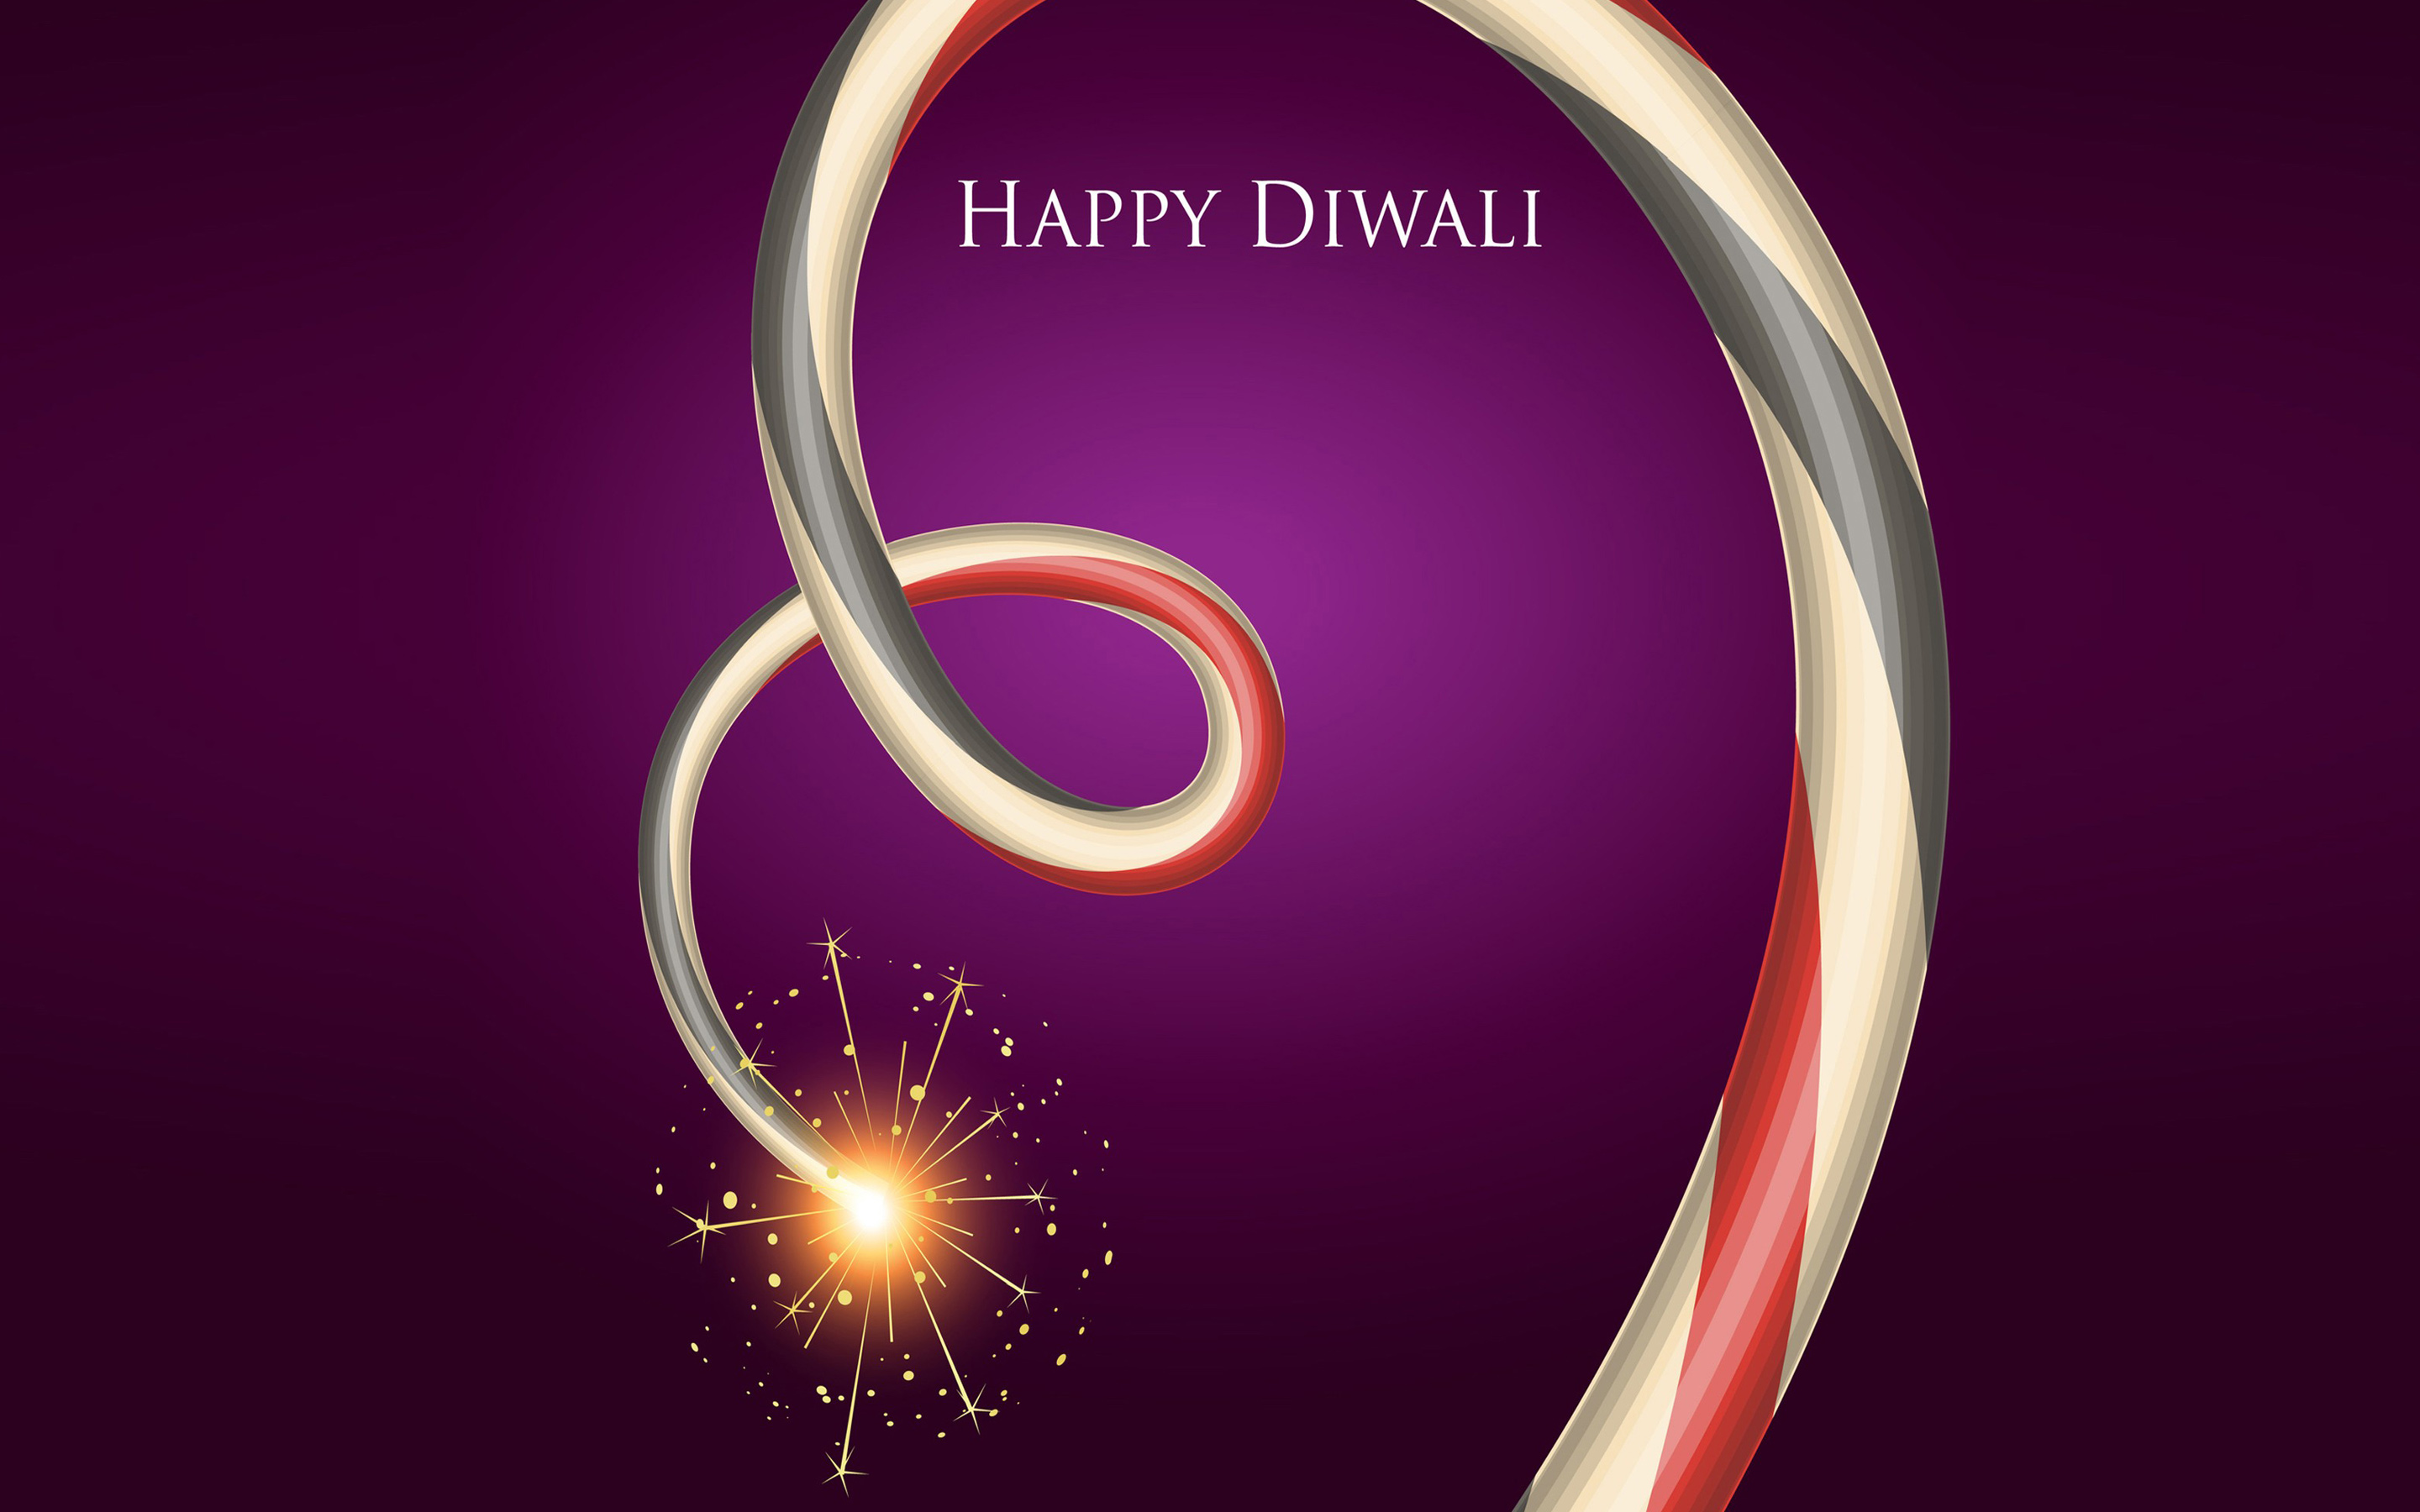 Happy Diwali Fireworks wallpaper